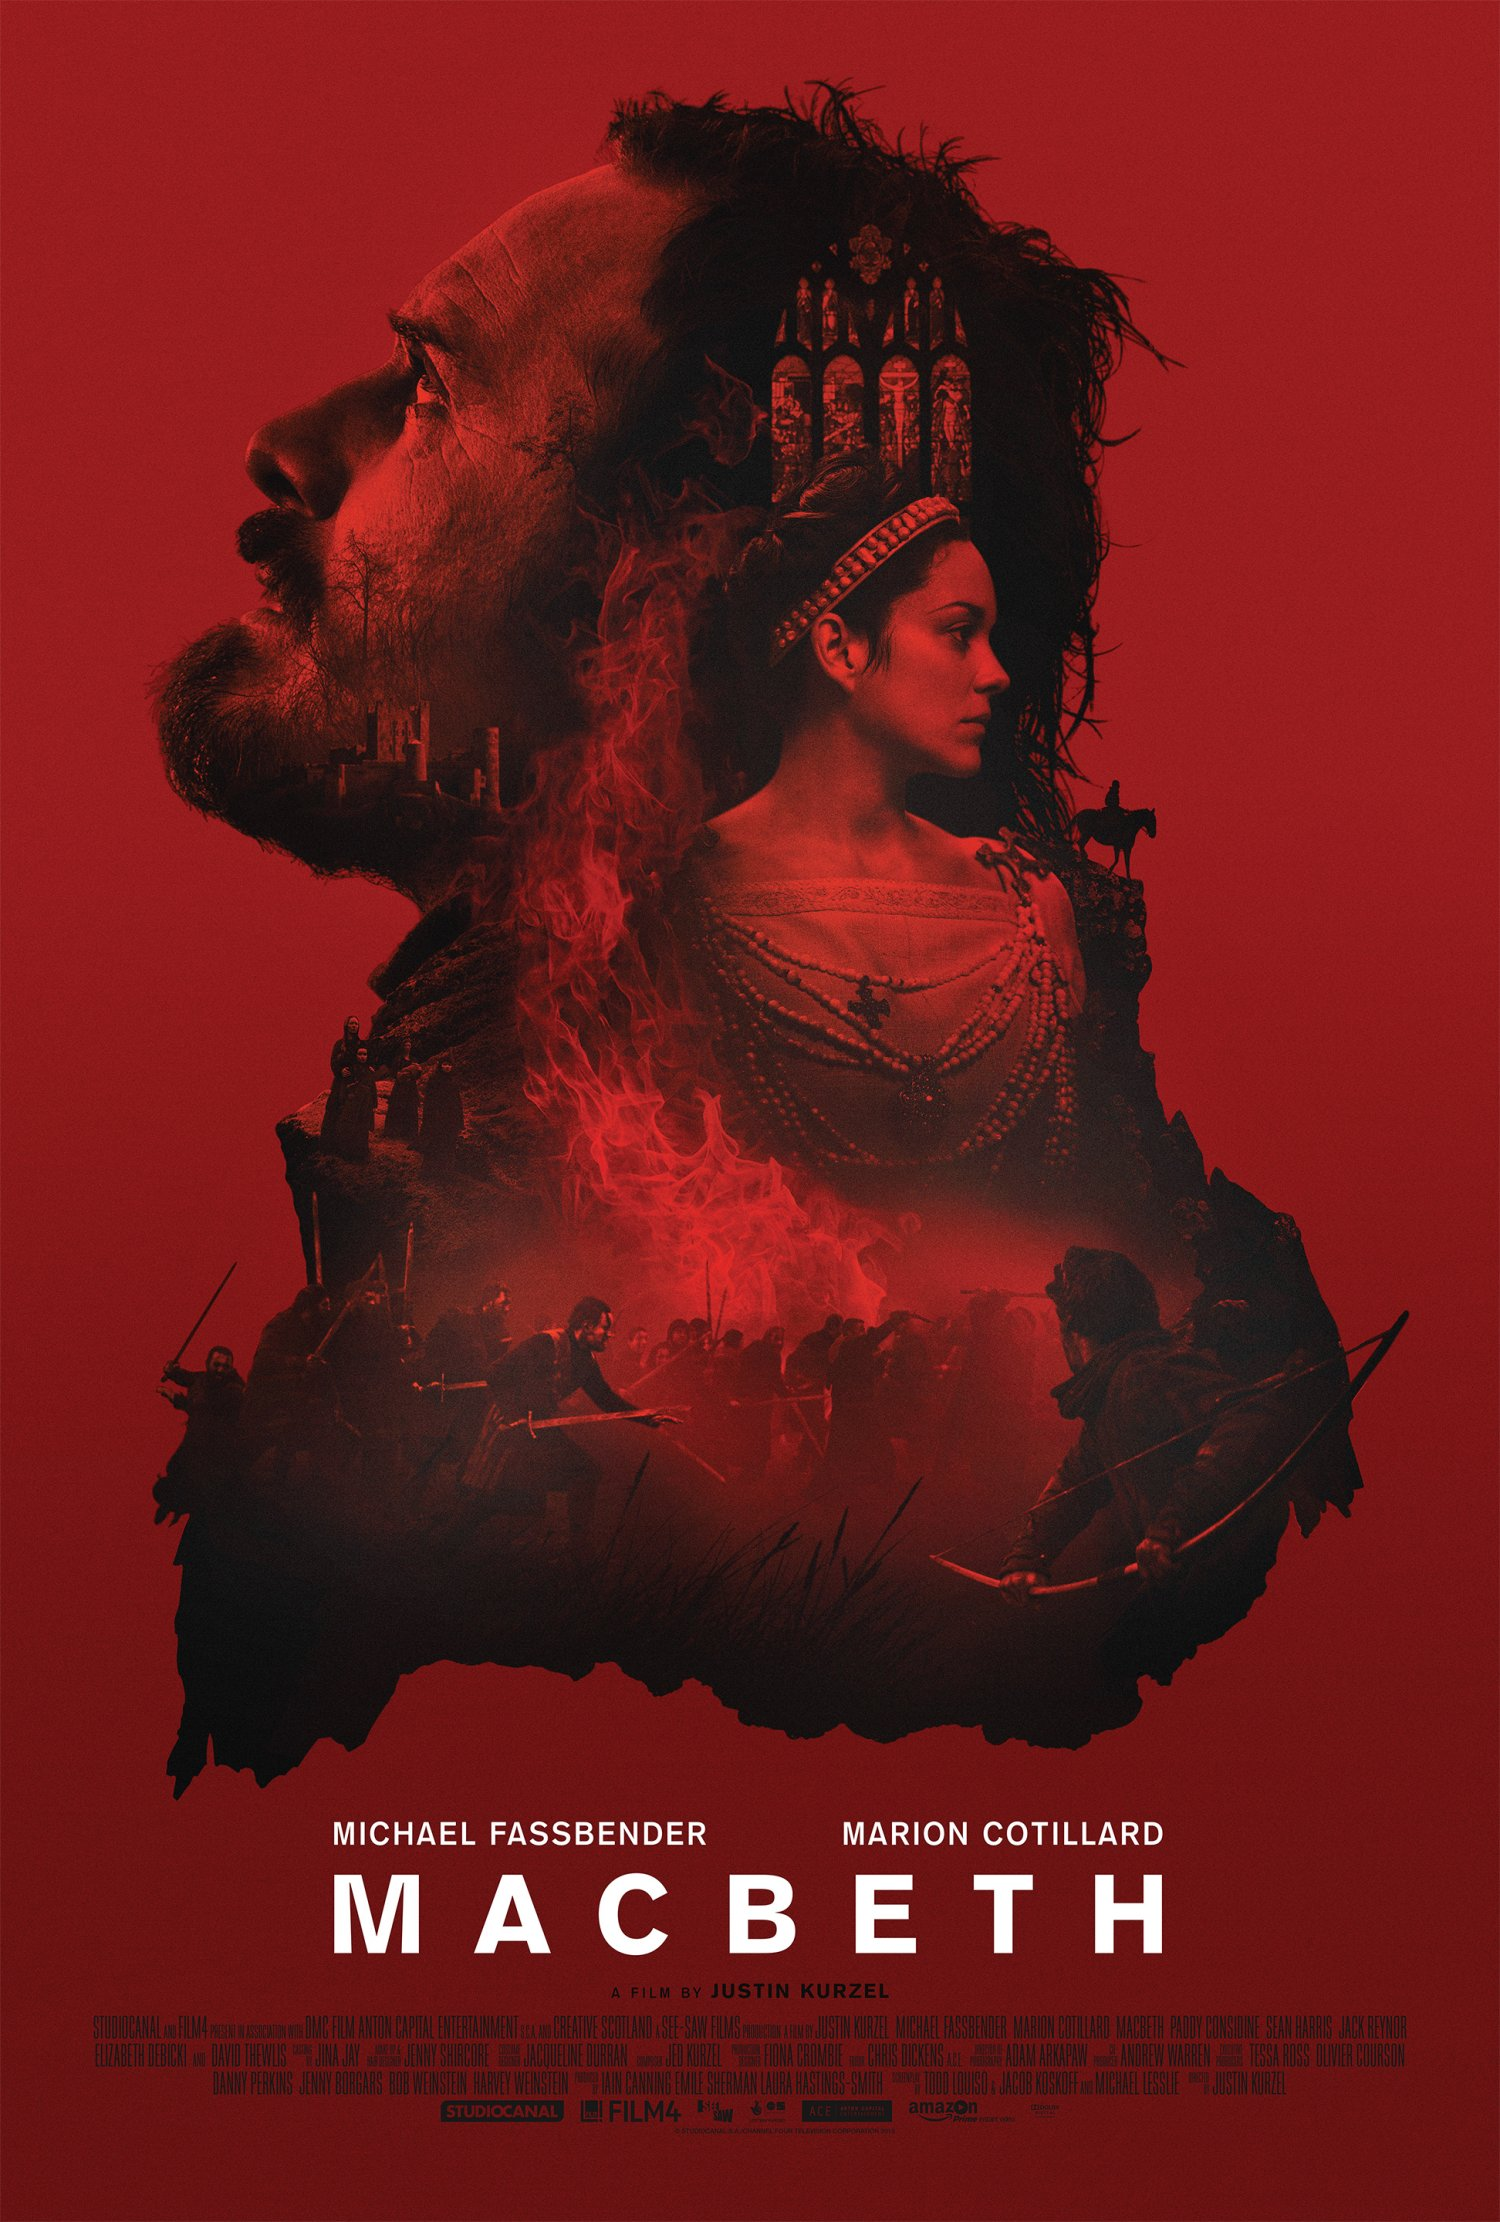 the fall of macbeth Macbeth is rather unique among shakespeare's tragic protagonists his is a dynamic character that undergoes drastic changes in personality over the course of the play.